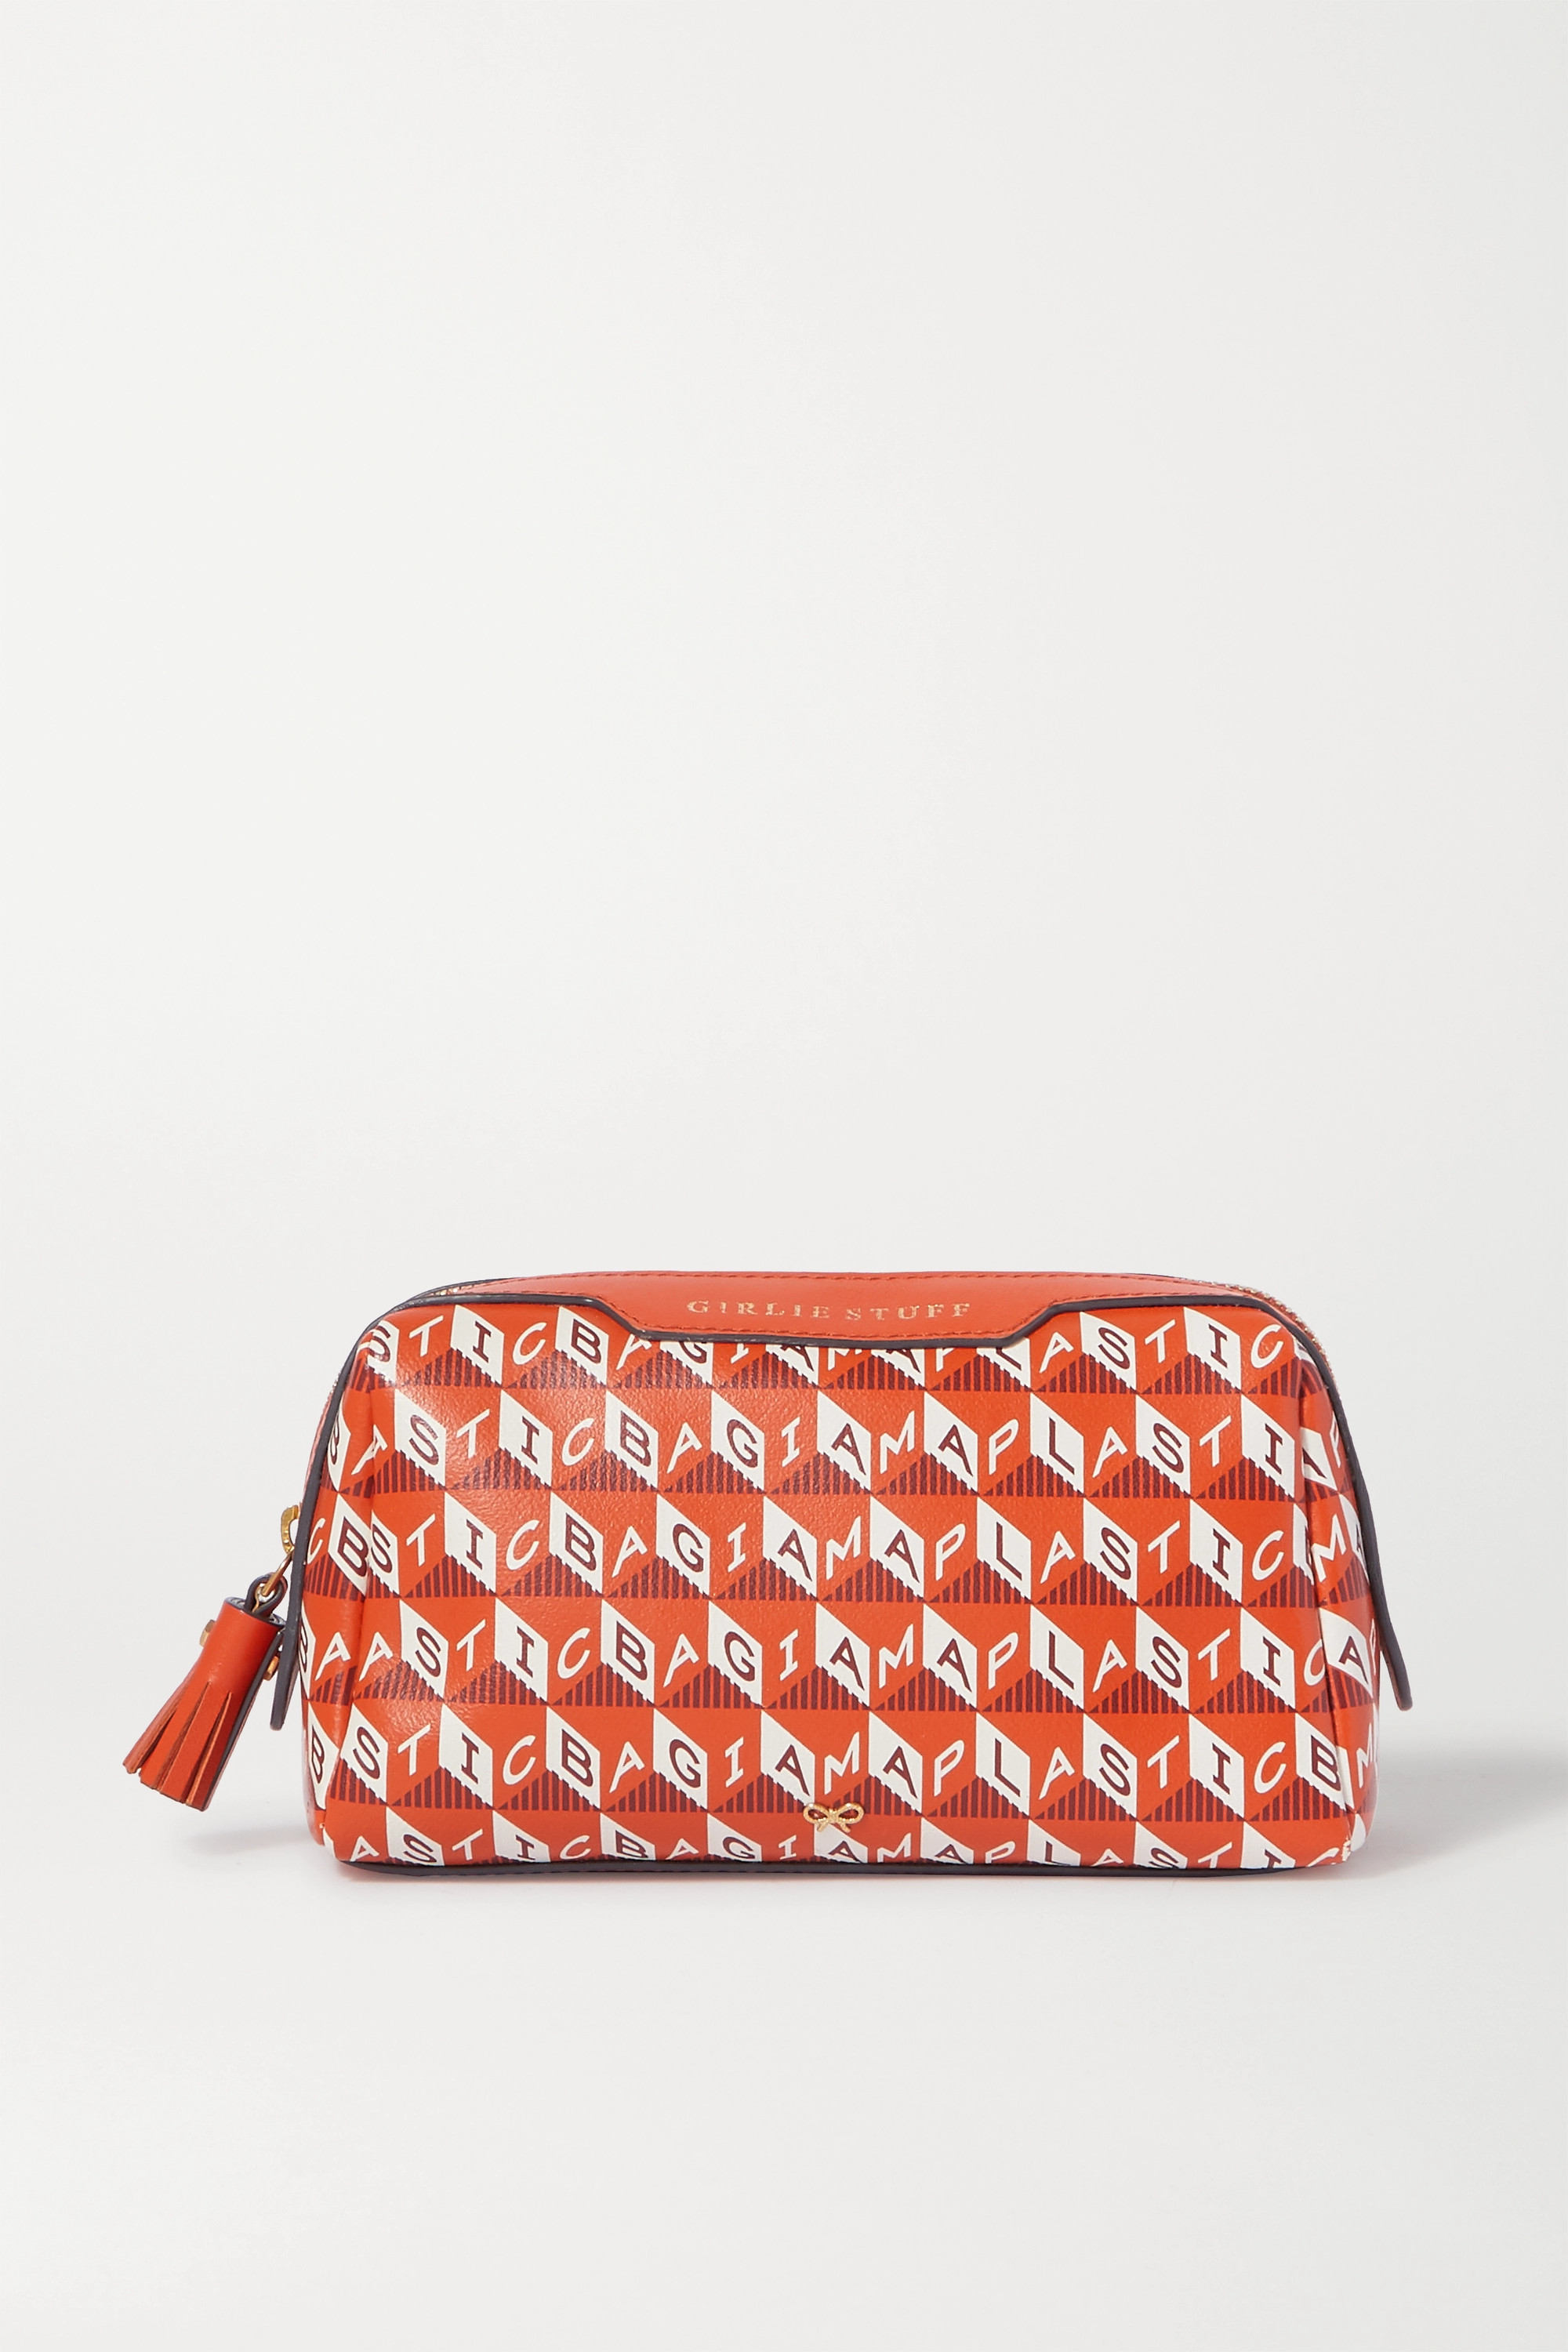 Anya Hindmarch + NET SUSTAIN Girlie Stuff leather-trimmed printed coated-canvas cosmetics case